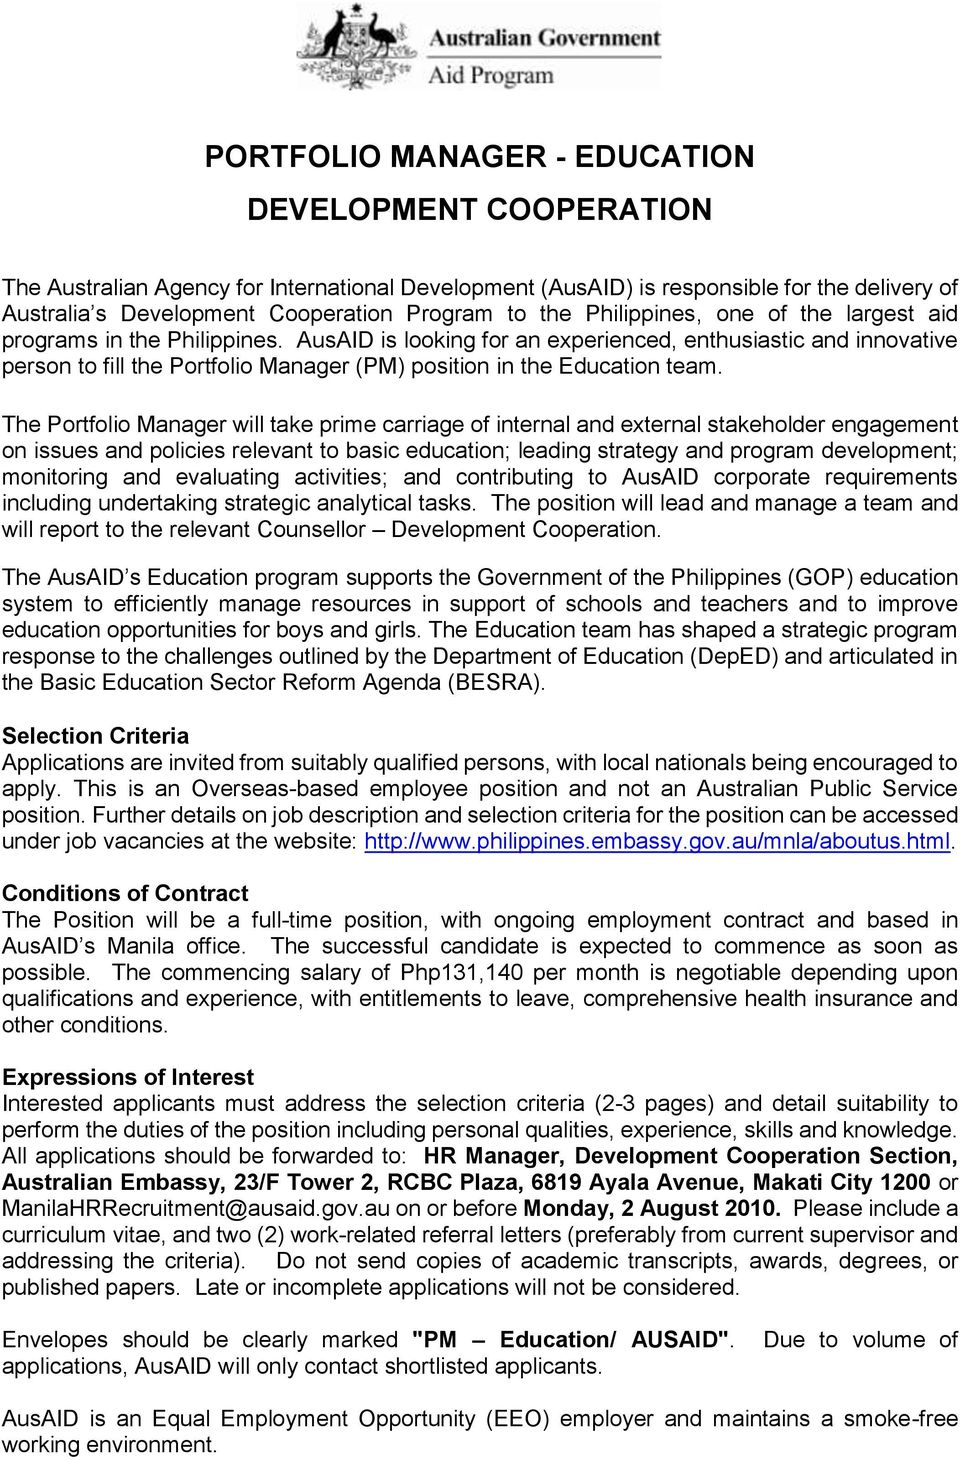 AusAID is looking for an experienced, enthusiastic and innovative person to fill the Portfolio Manager (PM) position in the Education team.